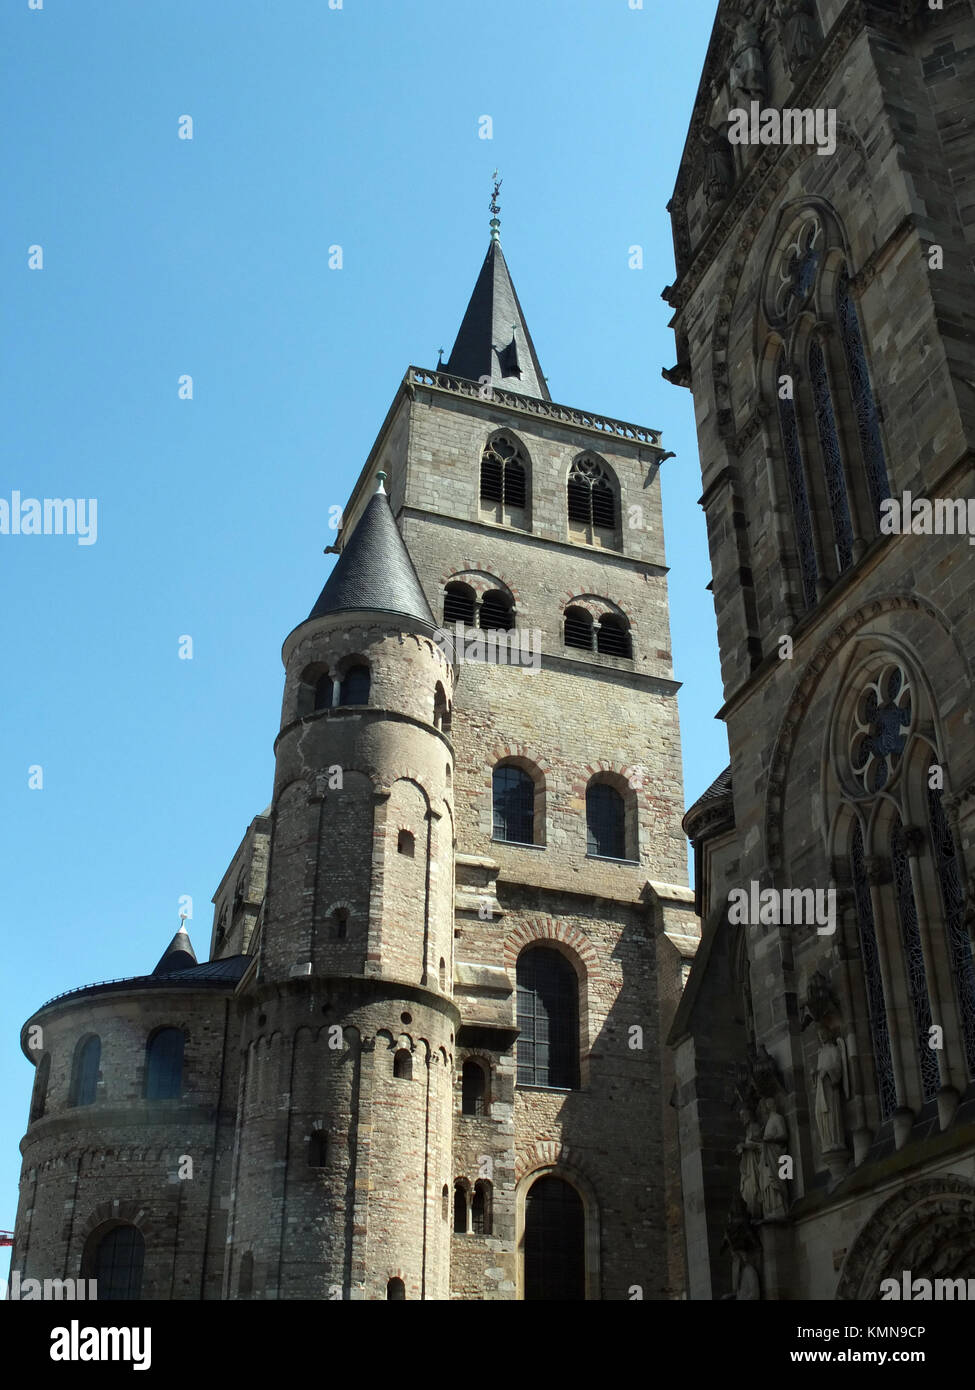 Trier, Germany. Old town center - Stock Image